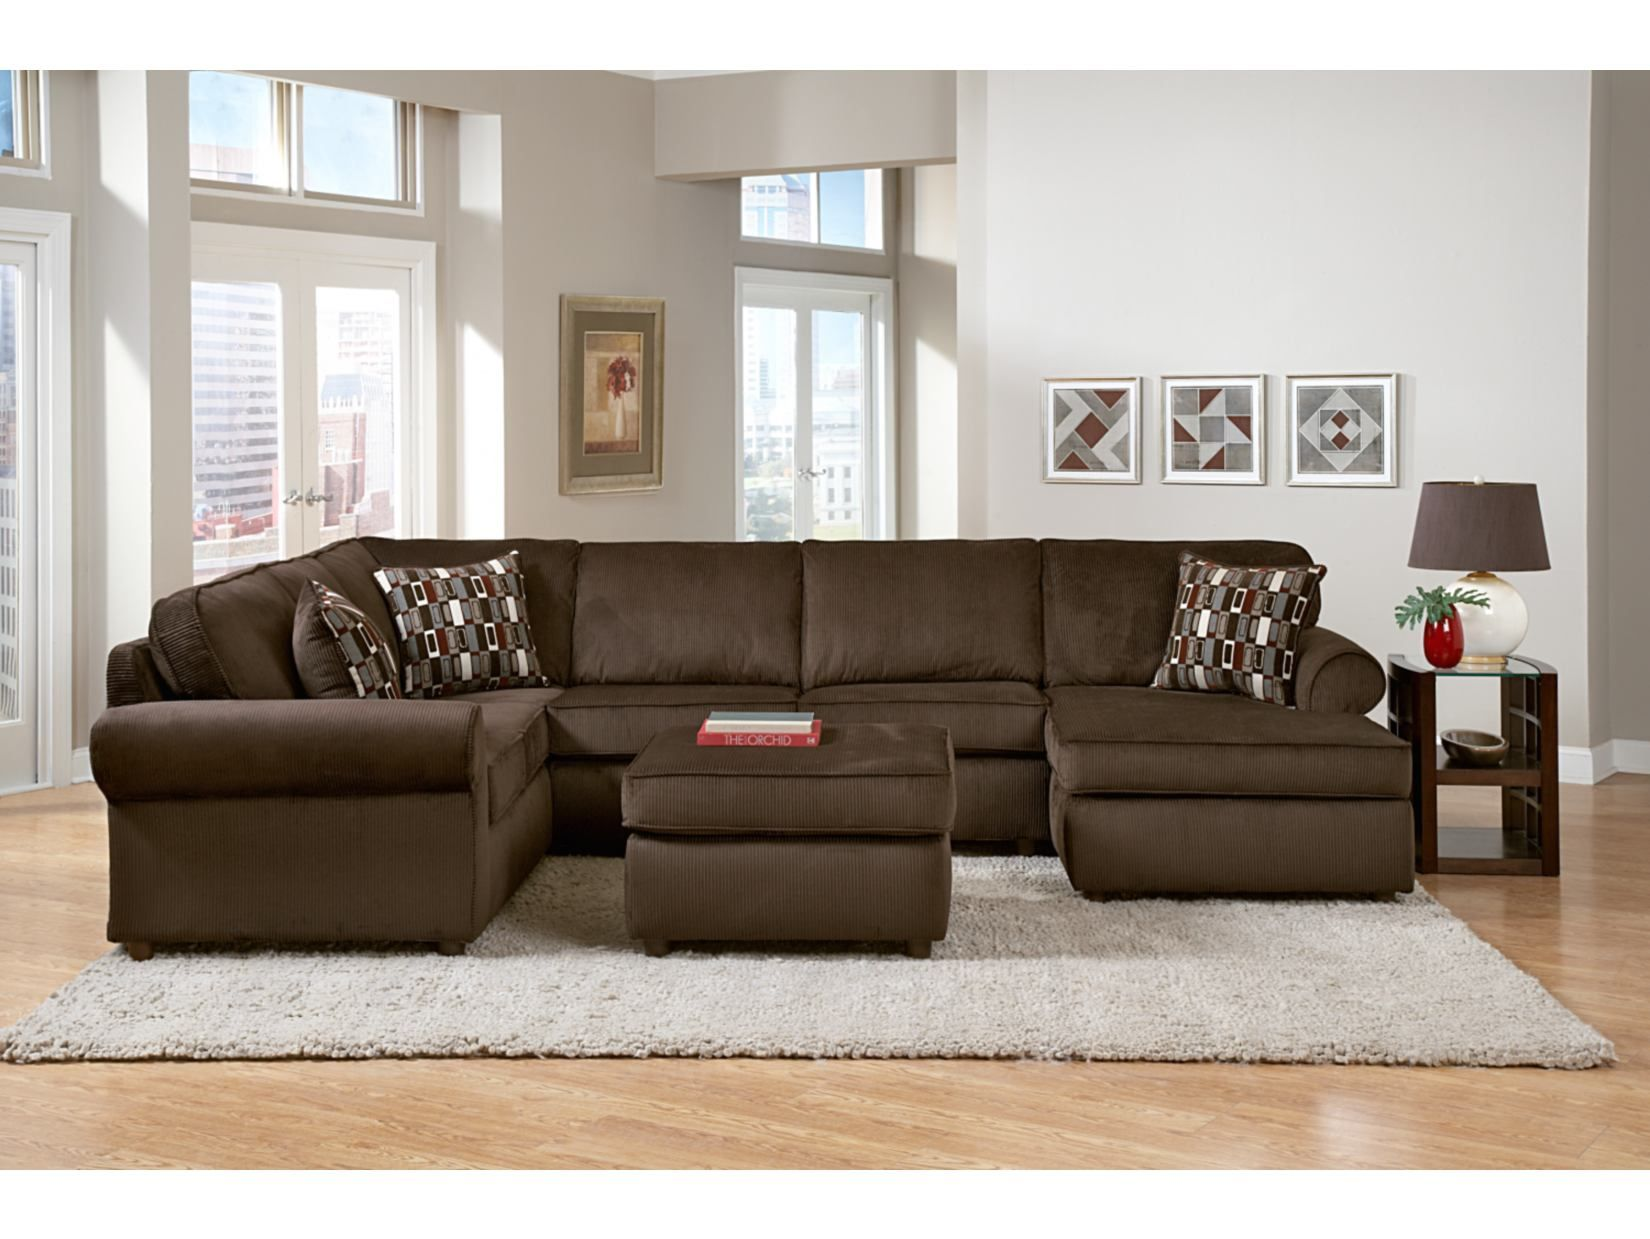 City Furniture Living Room Sets Extra Large Sectionals Monarch Chocolate 3 Pc Sectional Value Valuecitypintowin